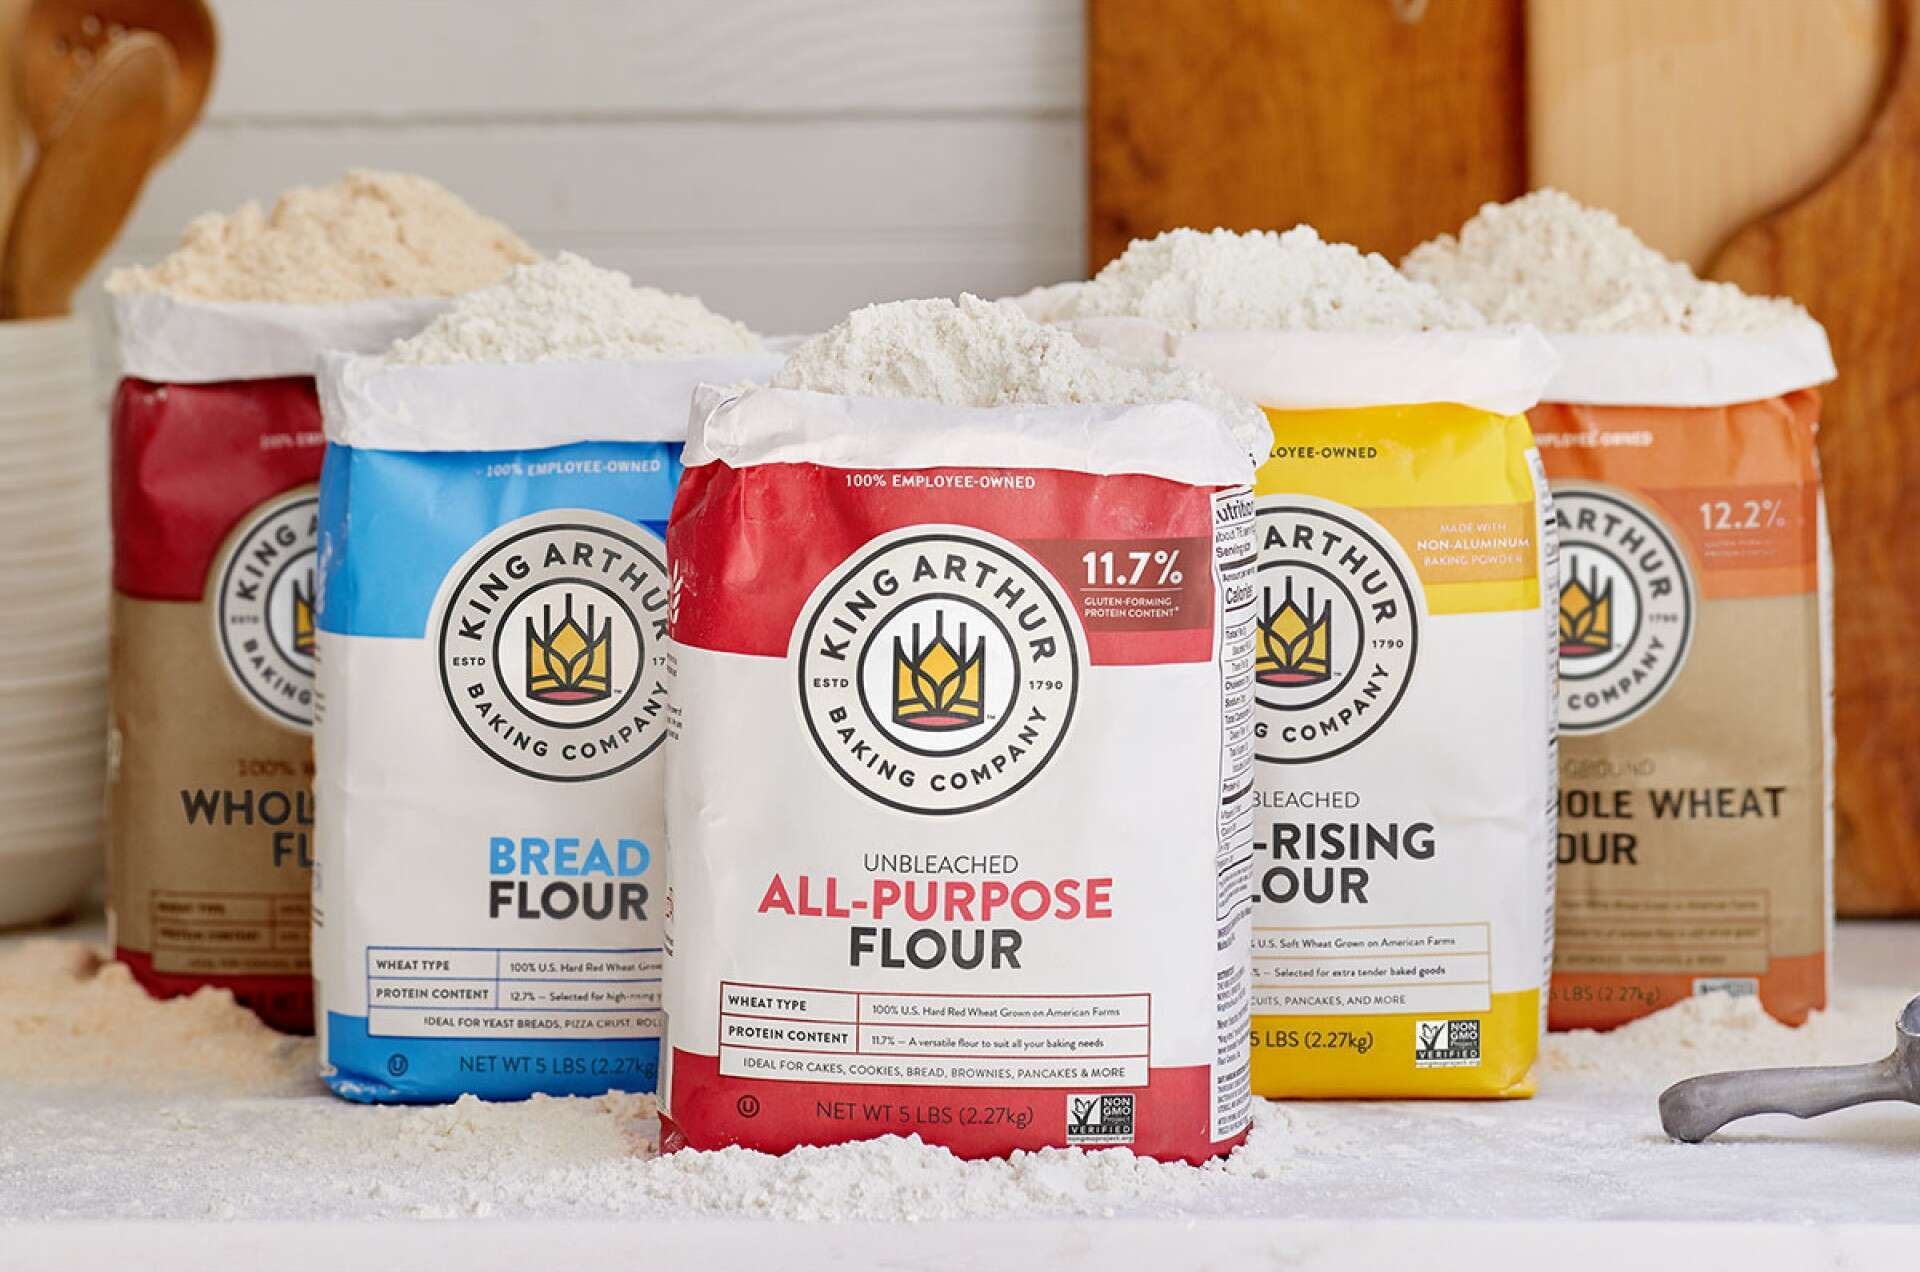 Bags of King Arthur flour featuring the new King Arthur Baking Company logo